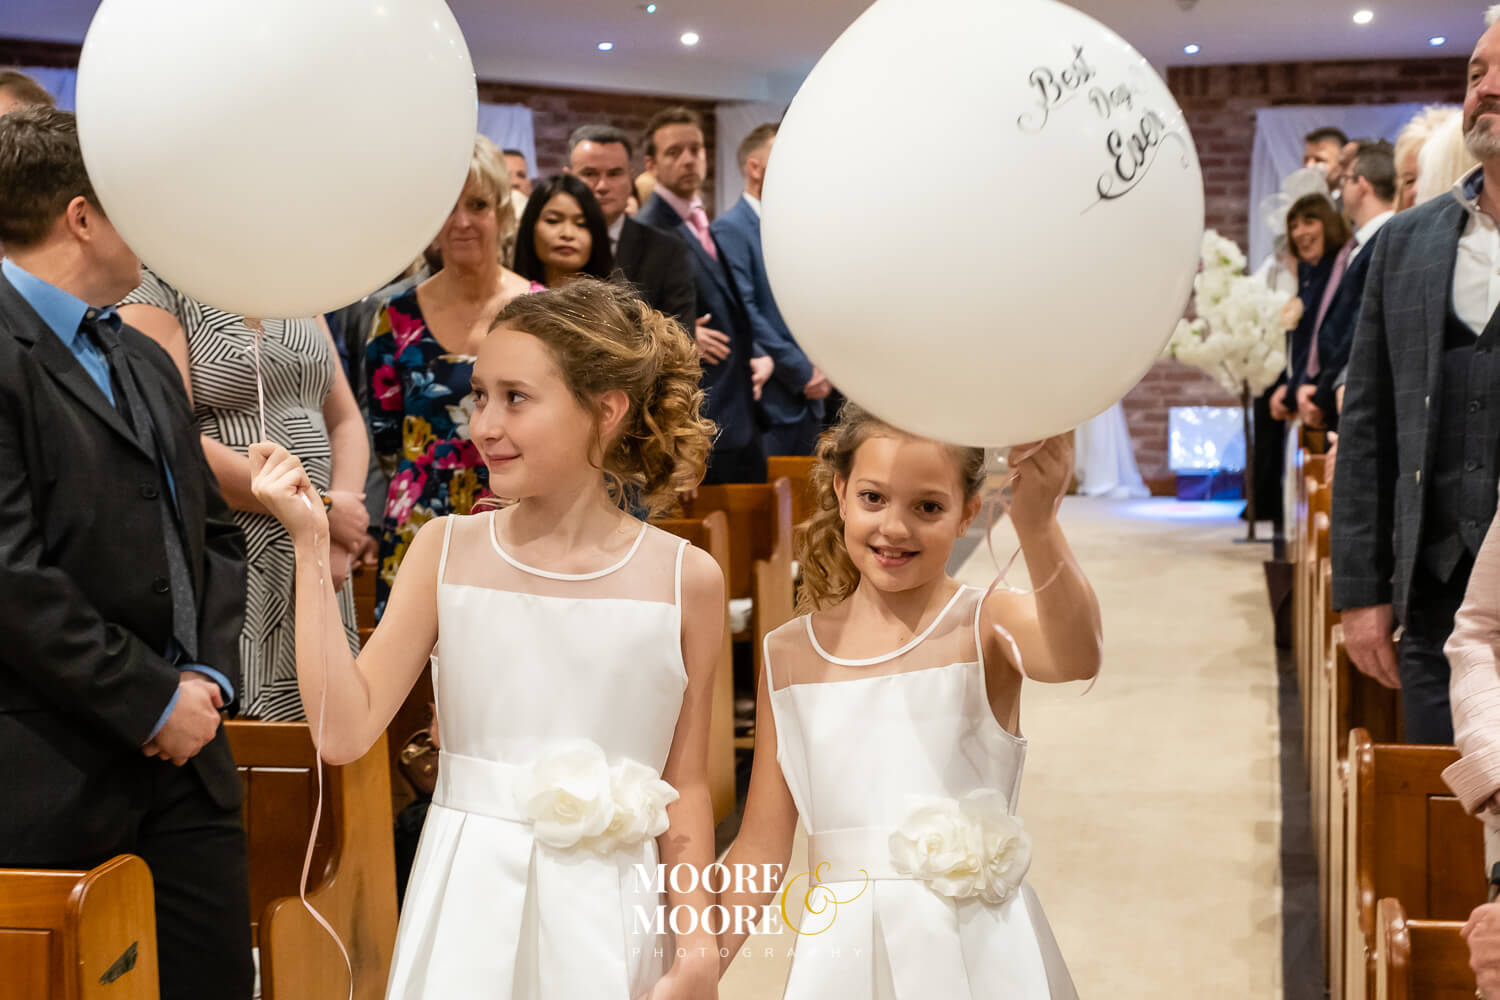 Young bridesmaids with balloons in aisle. Wedding Photos by Moore & Moore Photography, Hampshire